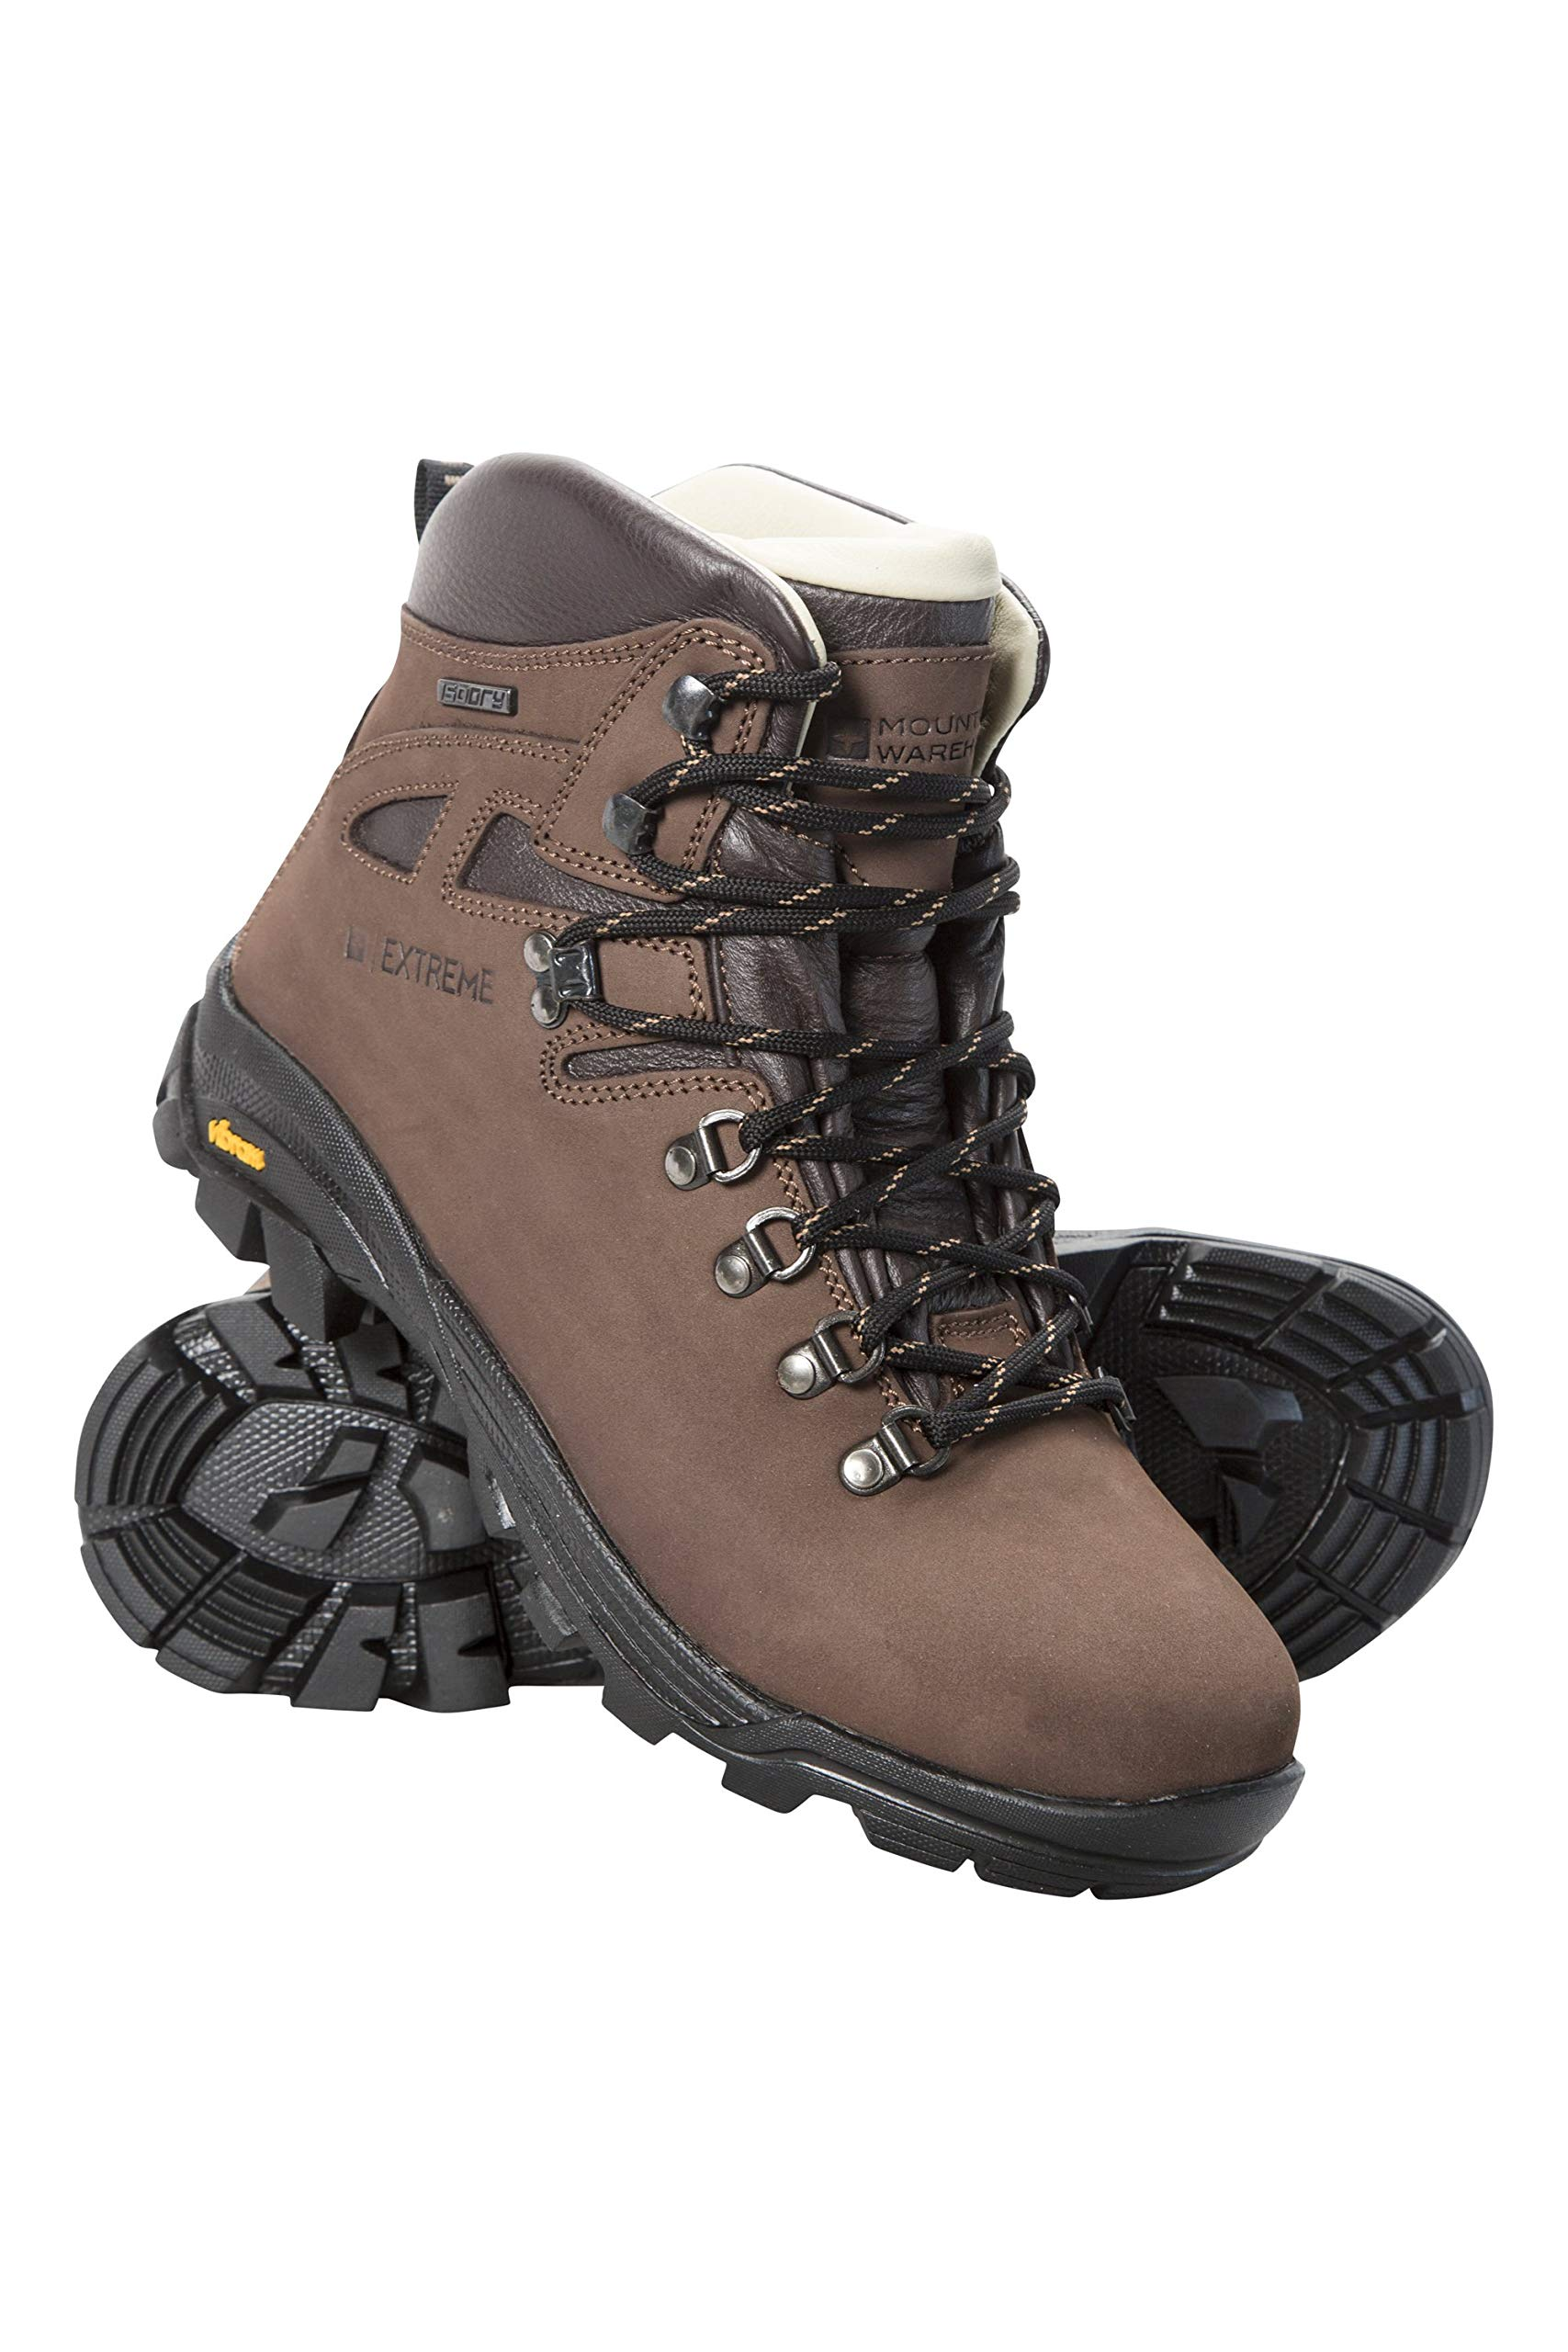 Mountain Warehouse Excalibur Womens Boots -Vibram Hiking Shoes Brown Womens Shoe Size 9 US by Mountain Warehouse